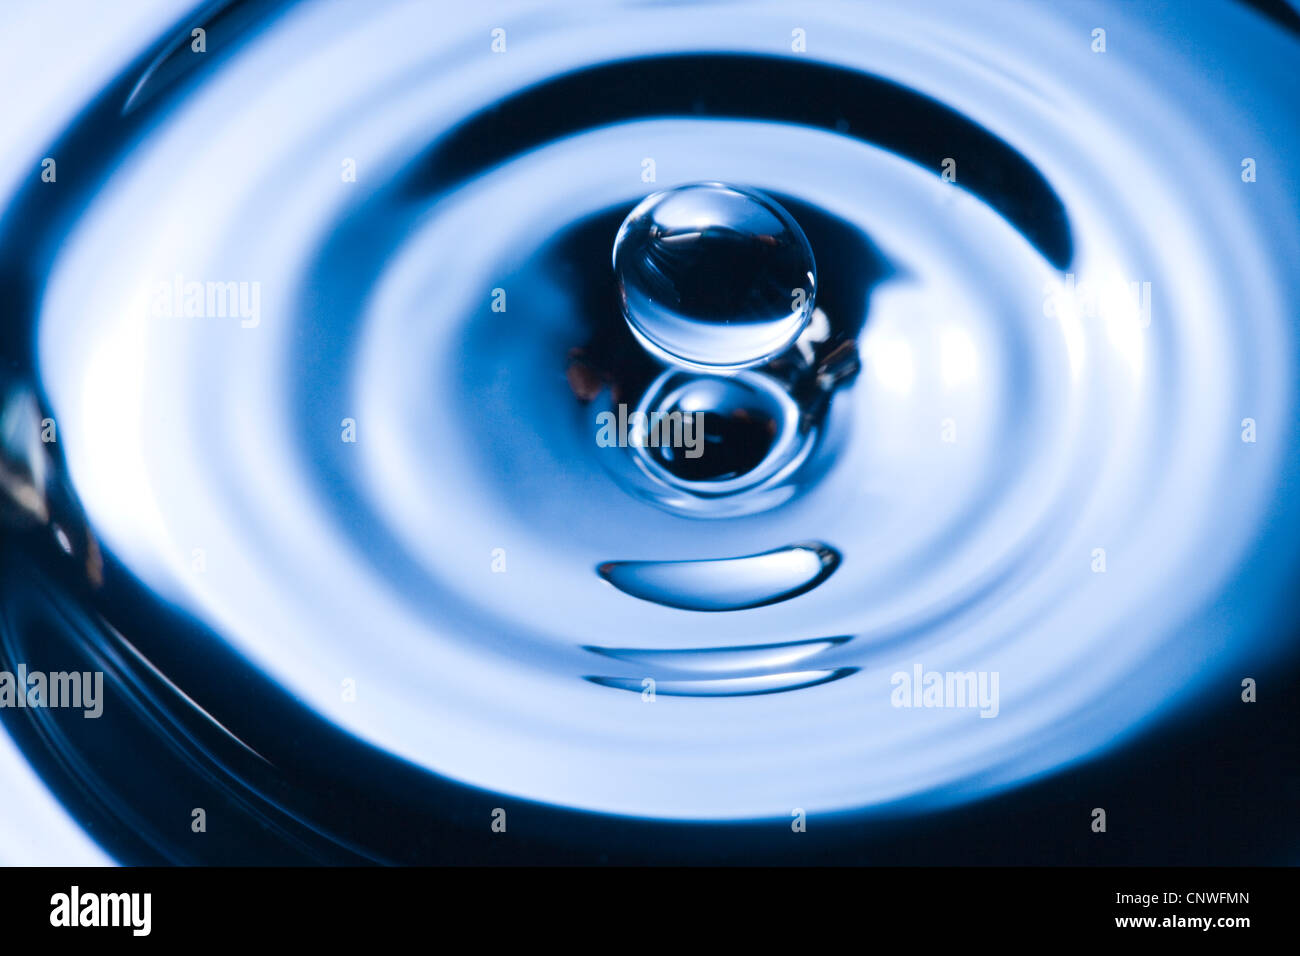 Water droplet causing ripples. - Stock Image